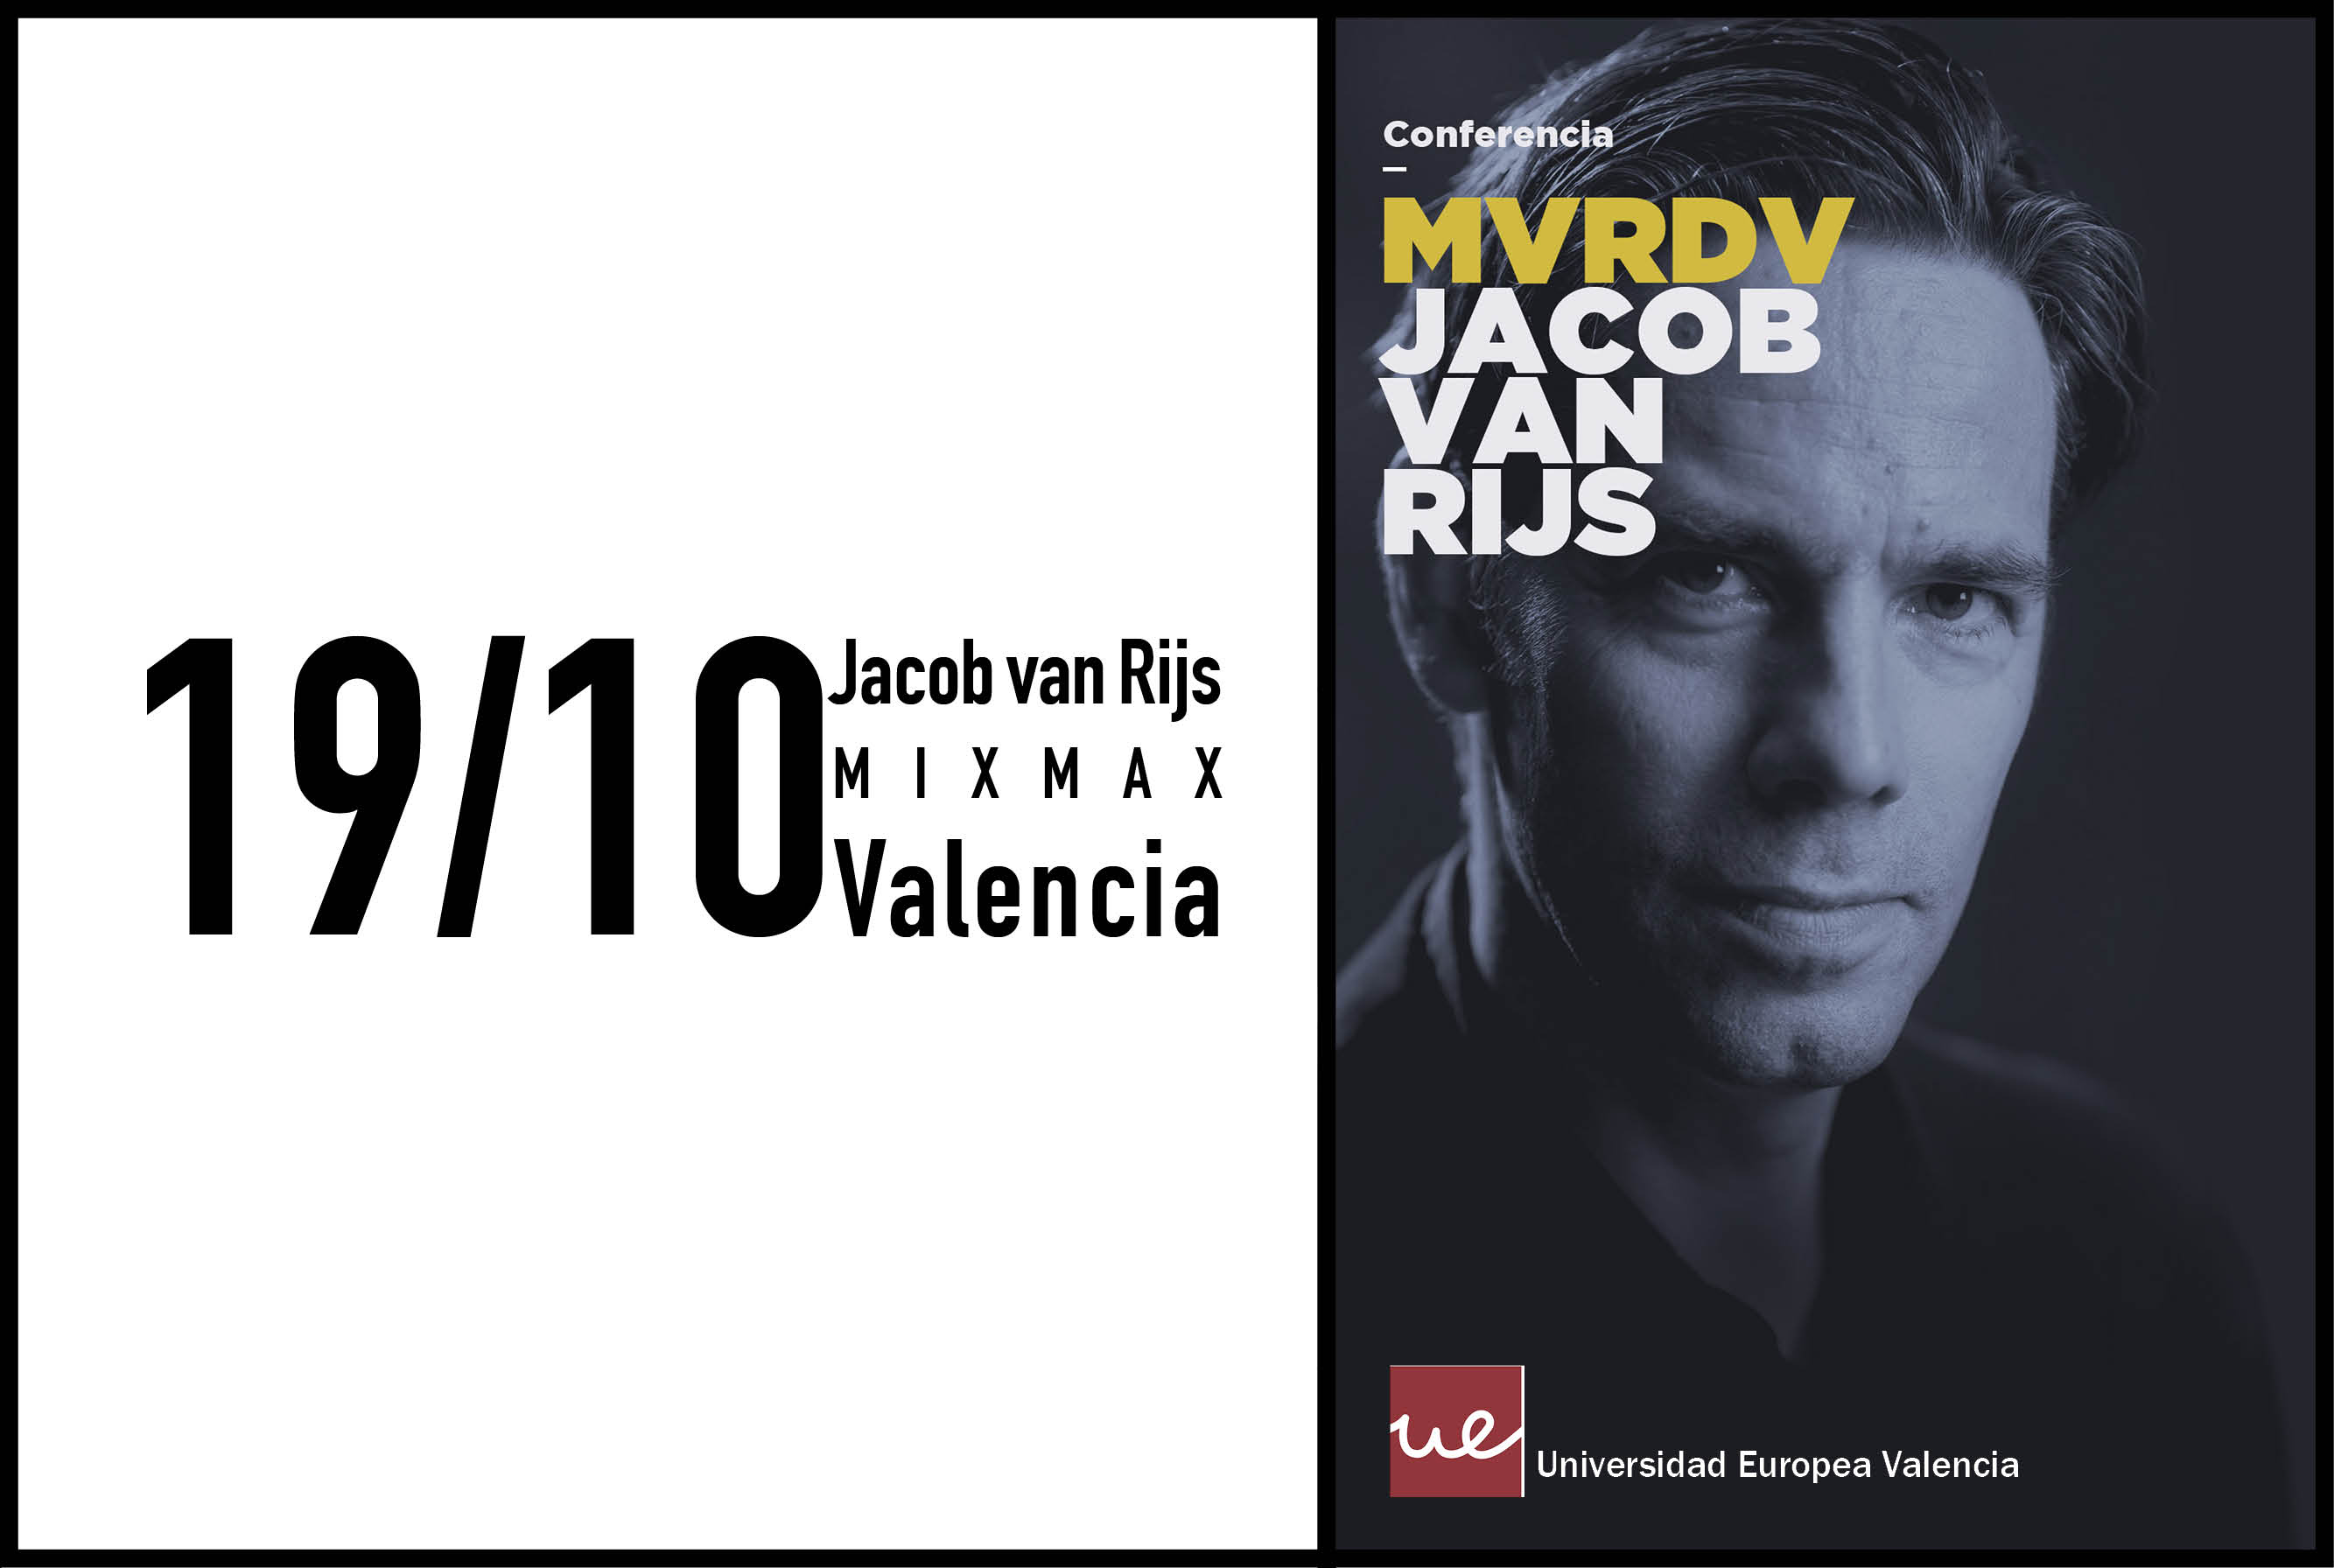 Jacob van Rijs to give a lecture at the Universidad Europea de Valencia, 19th  October 2016